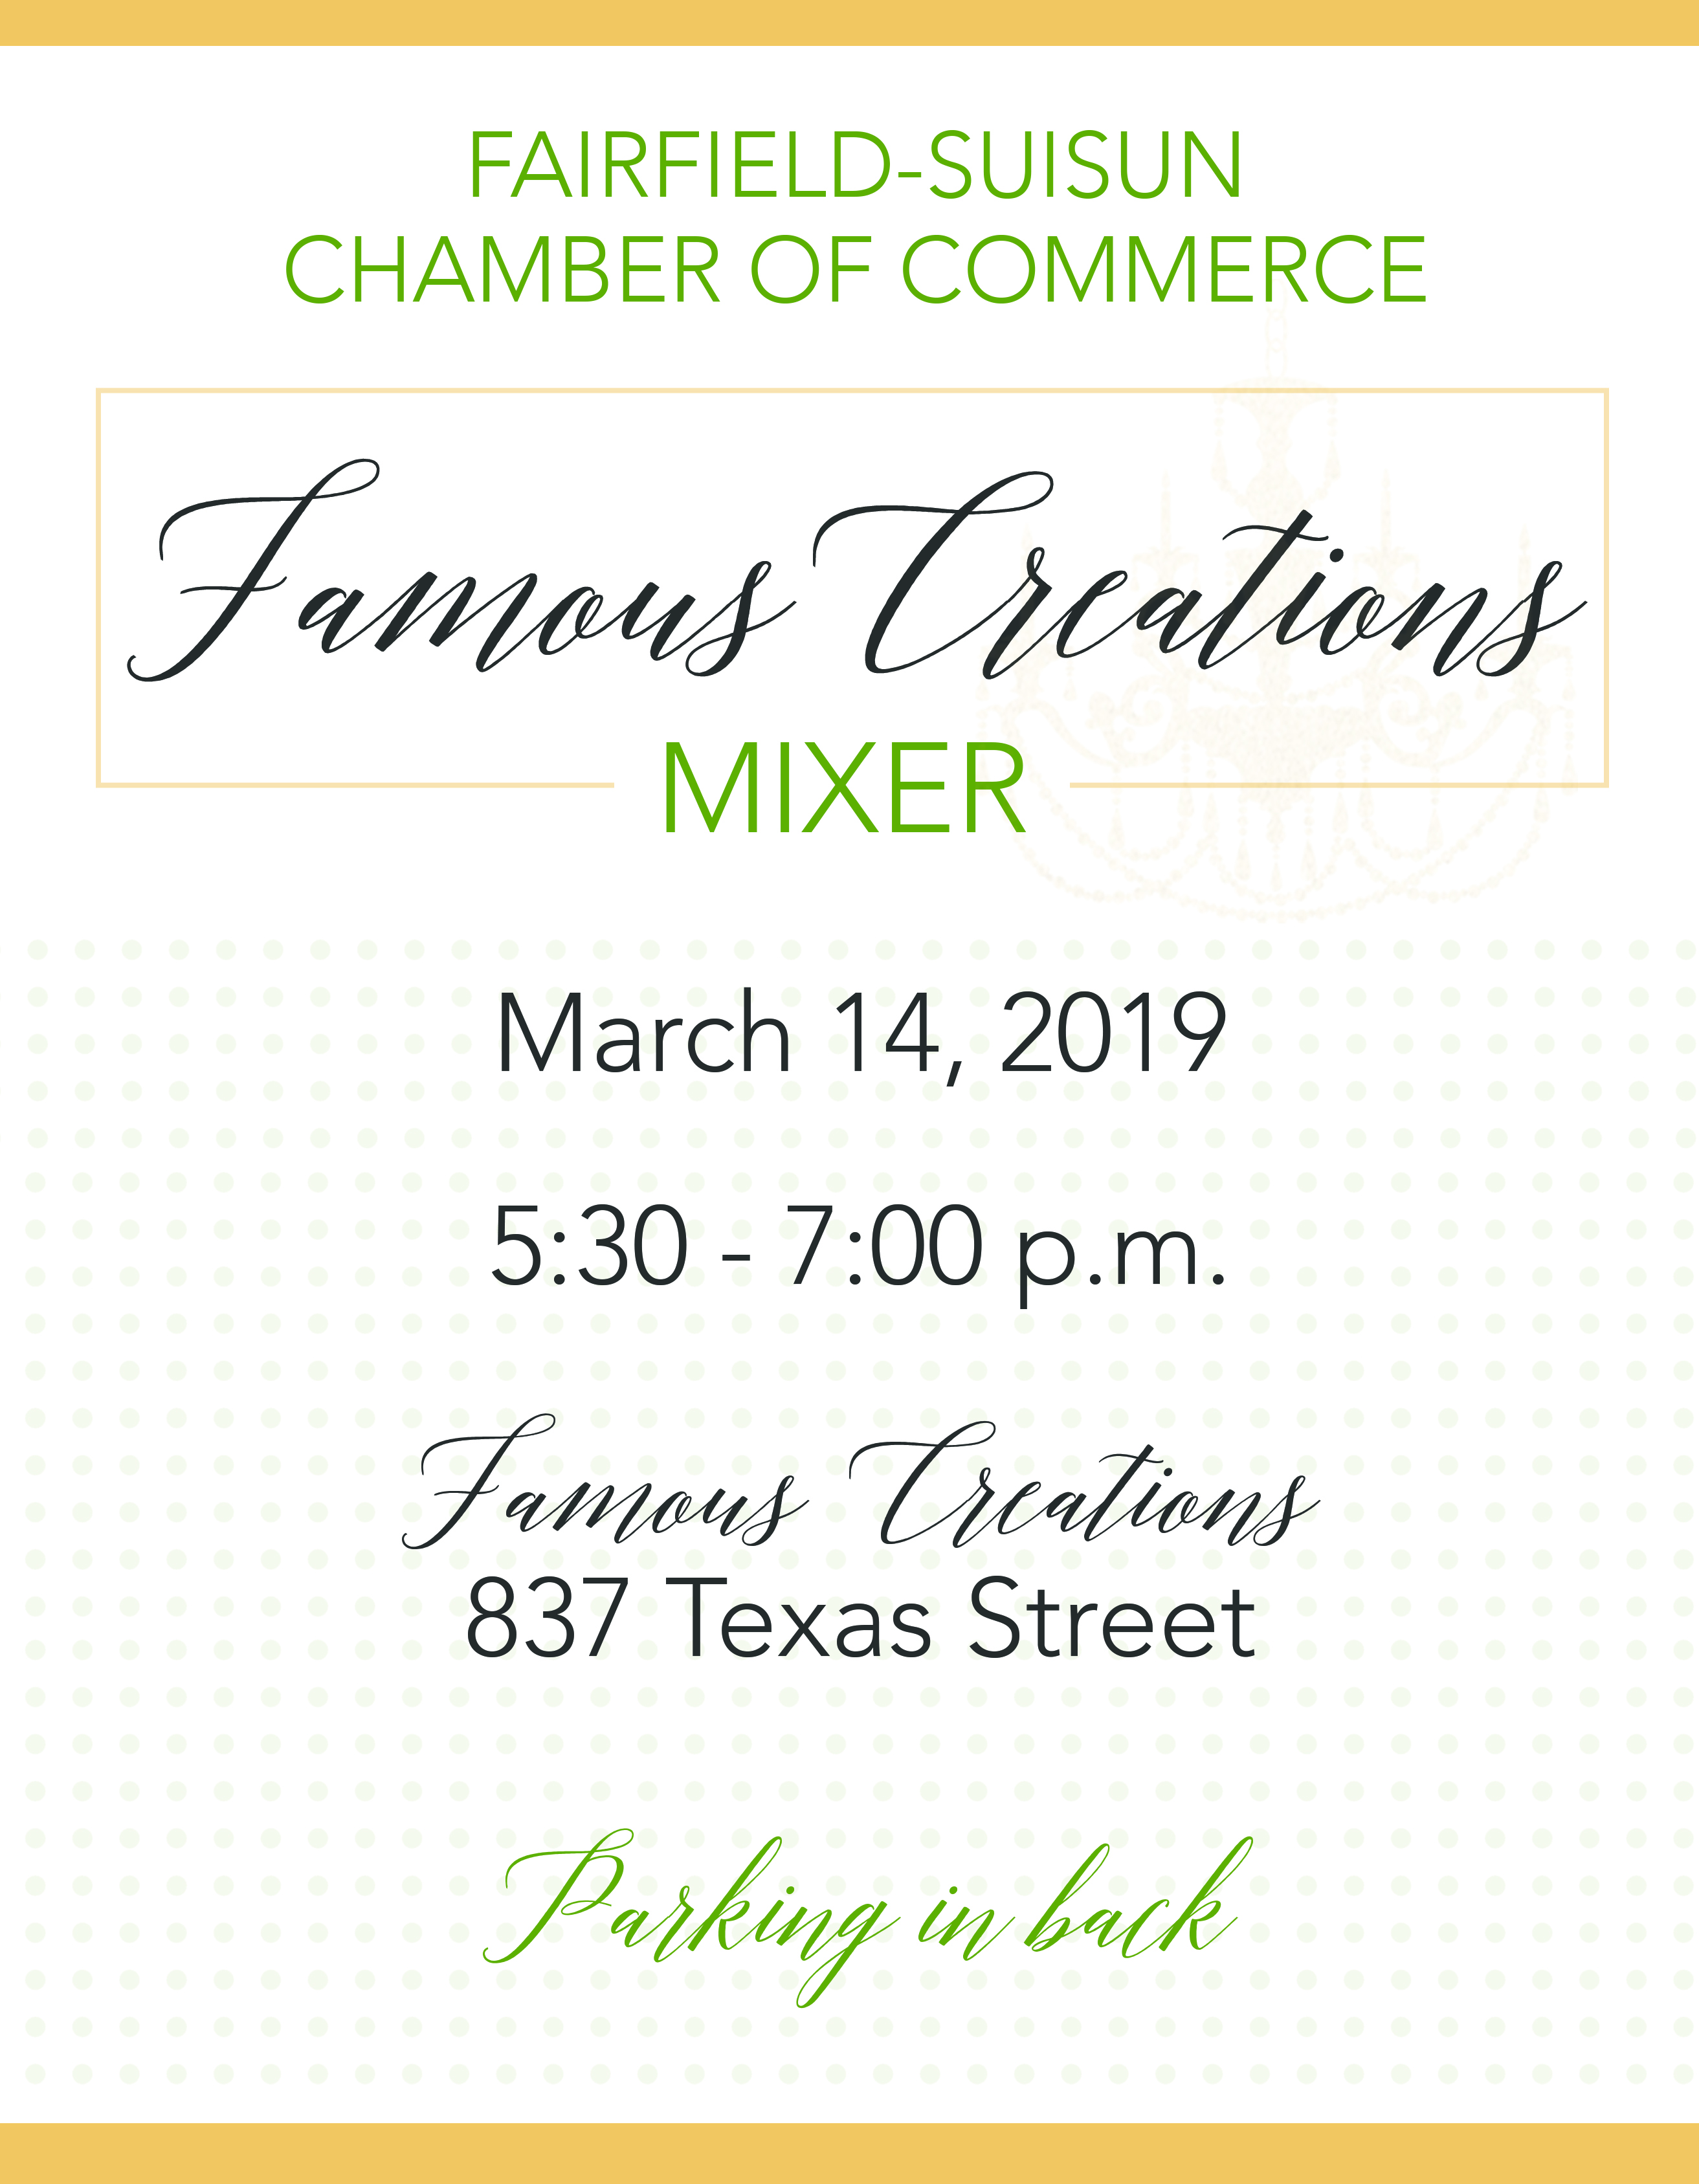 Chamber-Mixer-Famous-Creations-March-2019